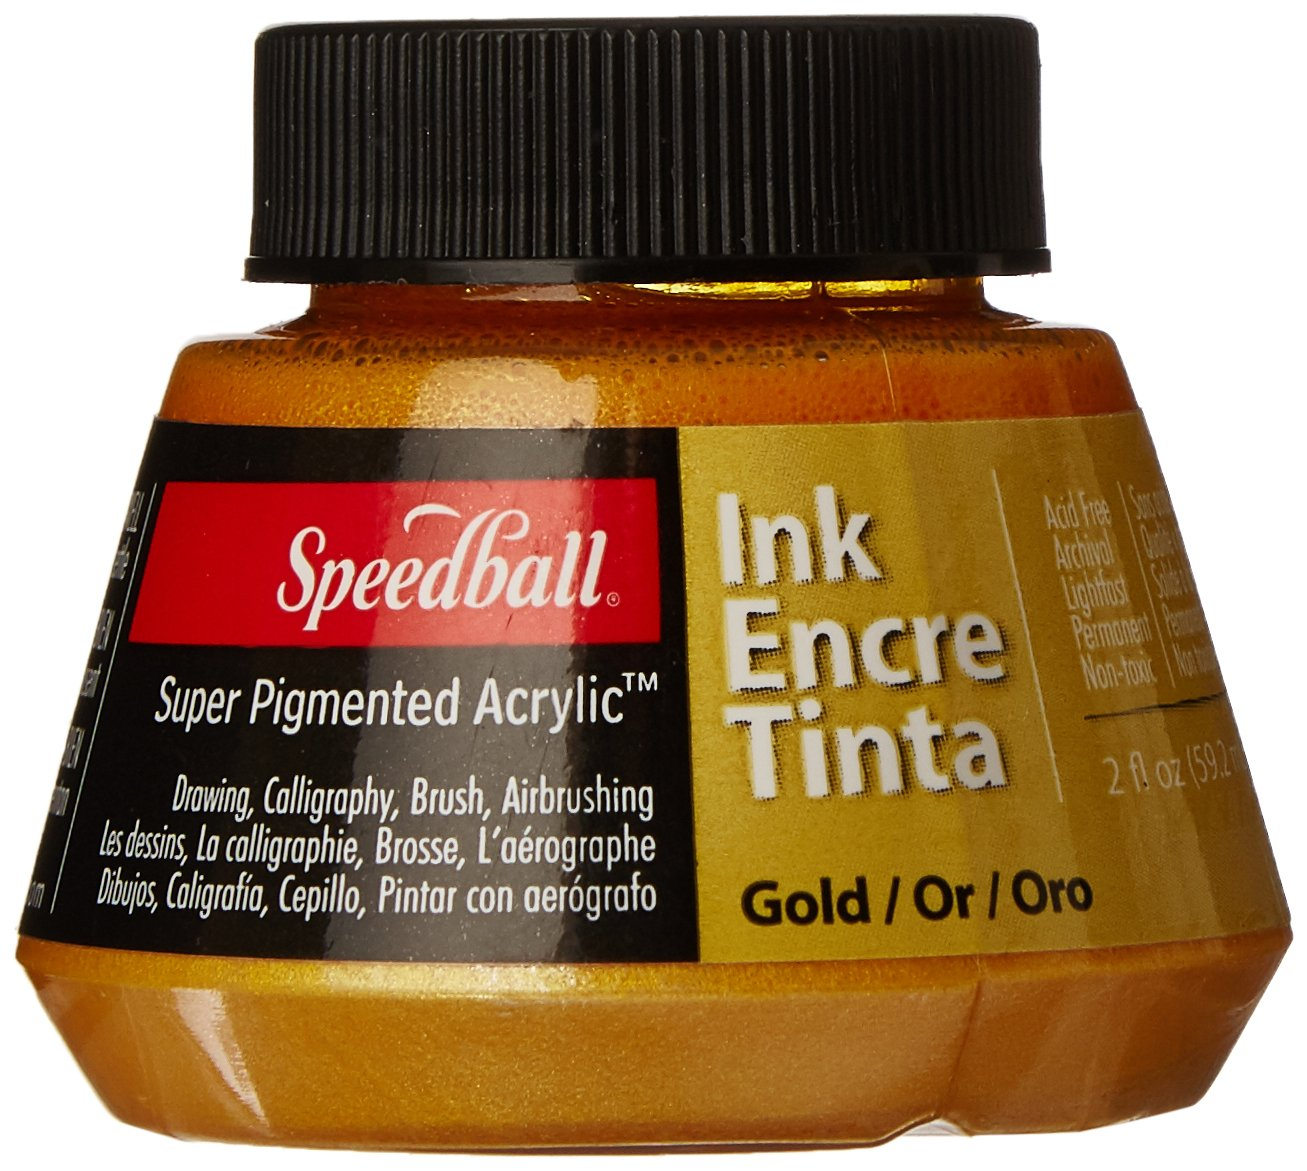 Speedball 2 oz Super Pigmented Acrylic Ink, Silver Notions - In Network SB31-57